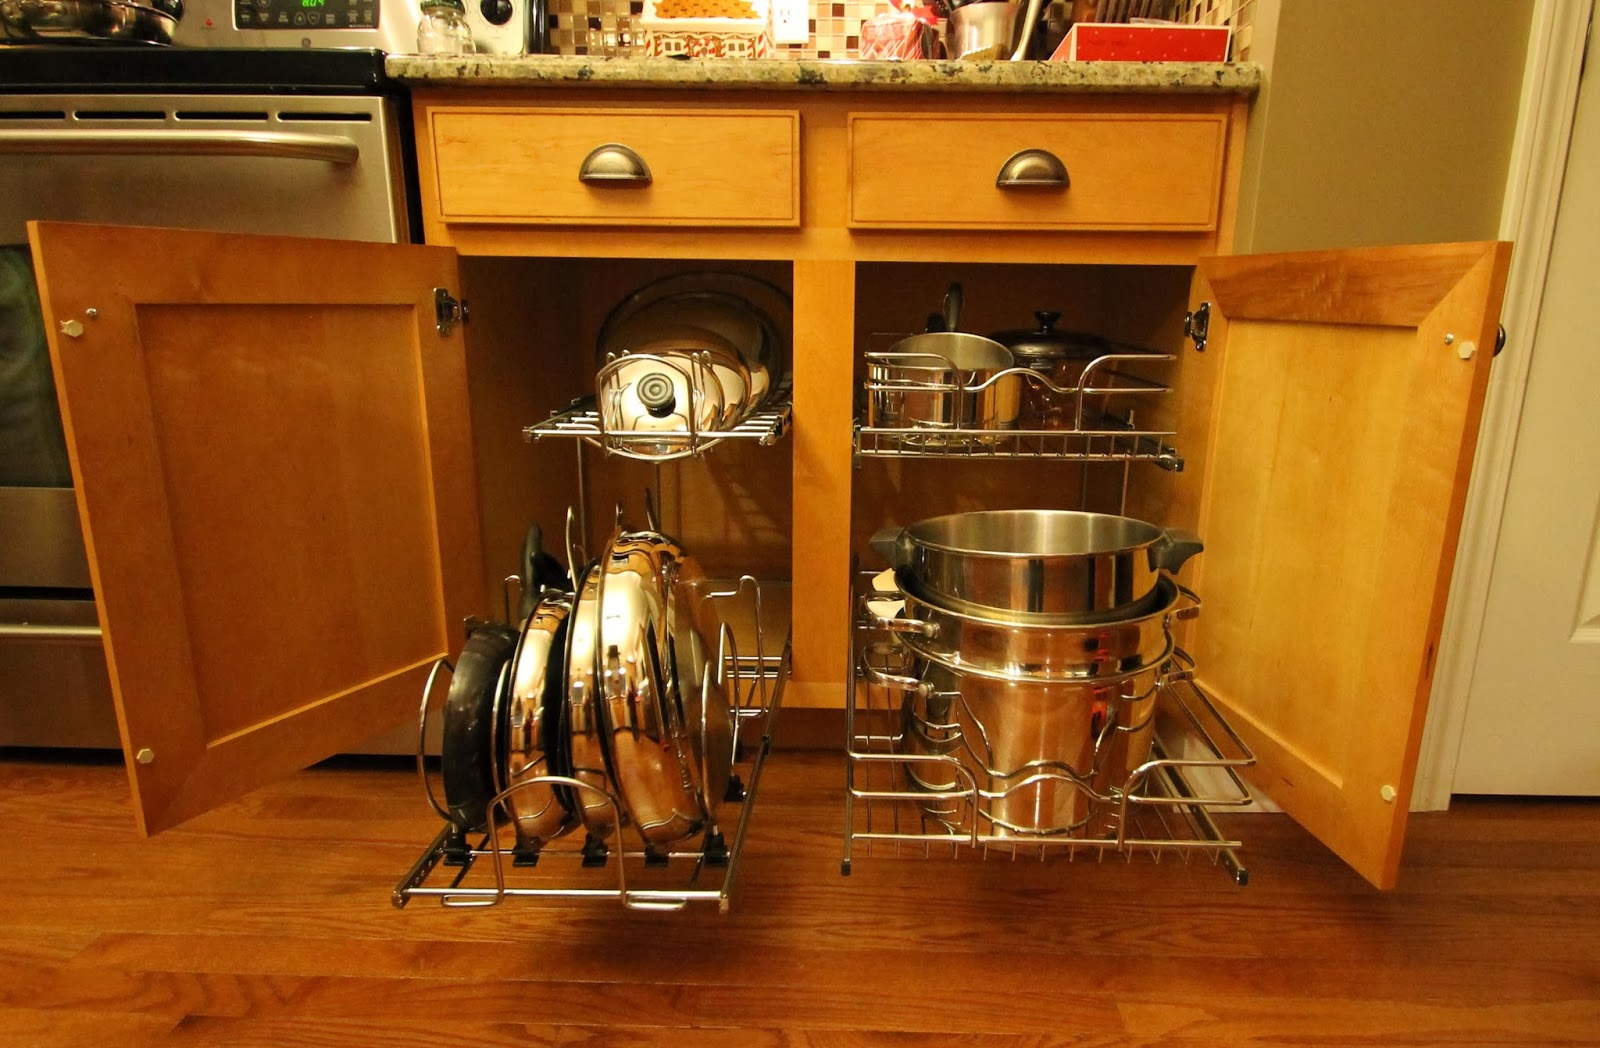 RevAShelf Two Tier Cookware Organizer